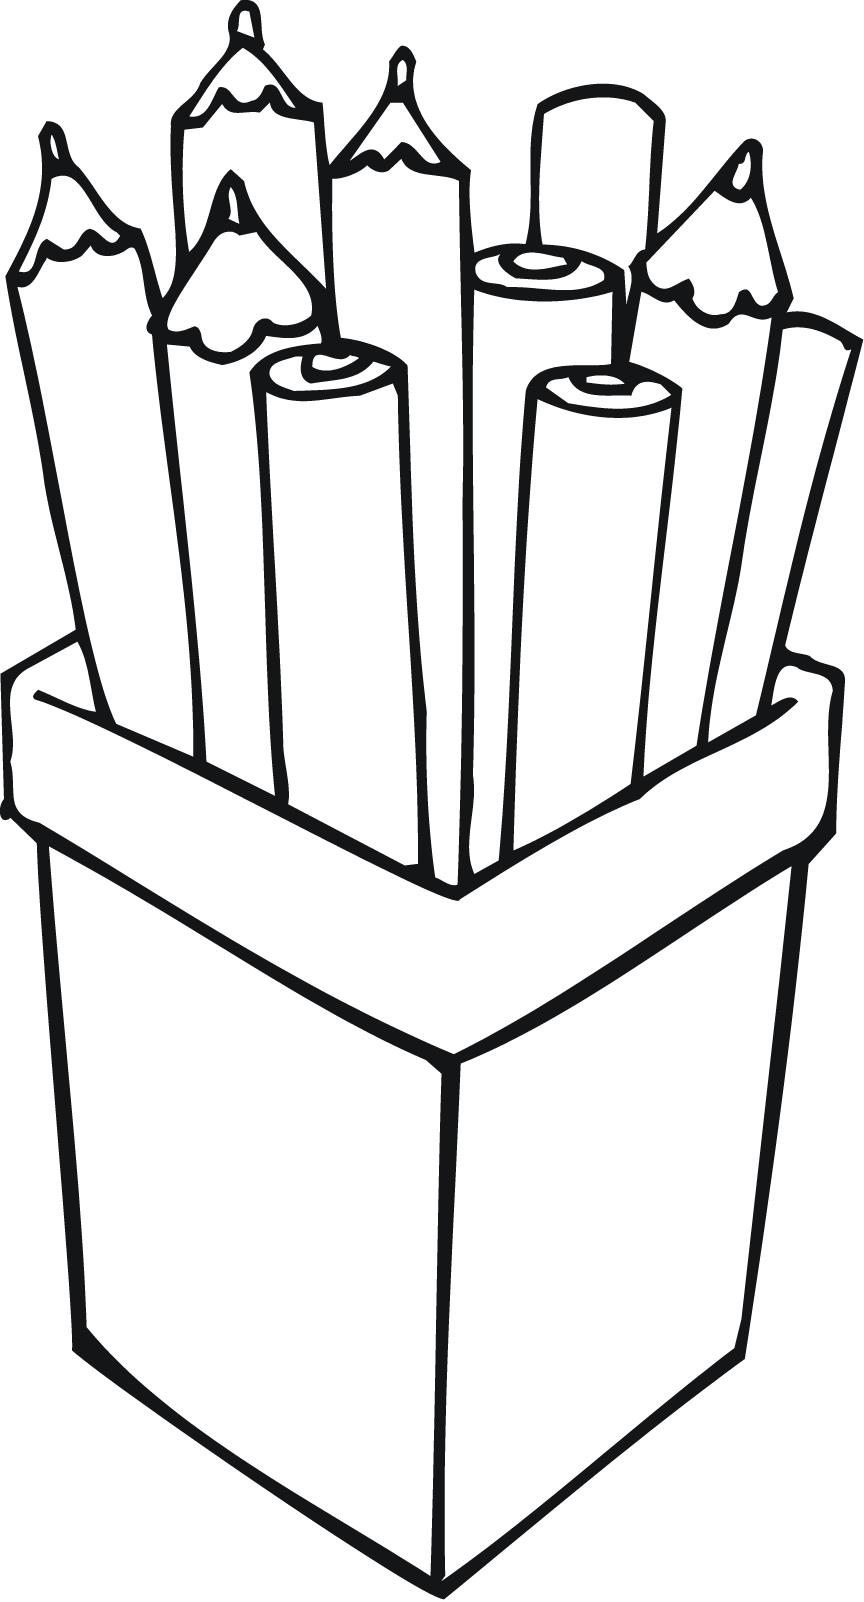 Pack of pencils clipart black and white clipart library stock Pencil Box Clipart | Free download best Pencil Box Clipart ... clipart library stock